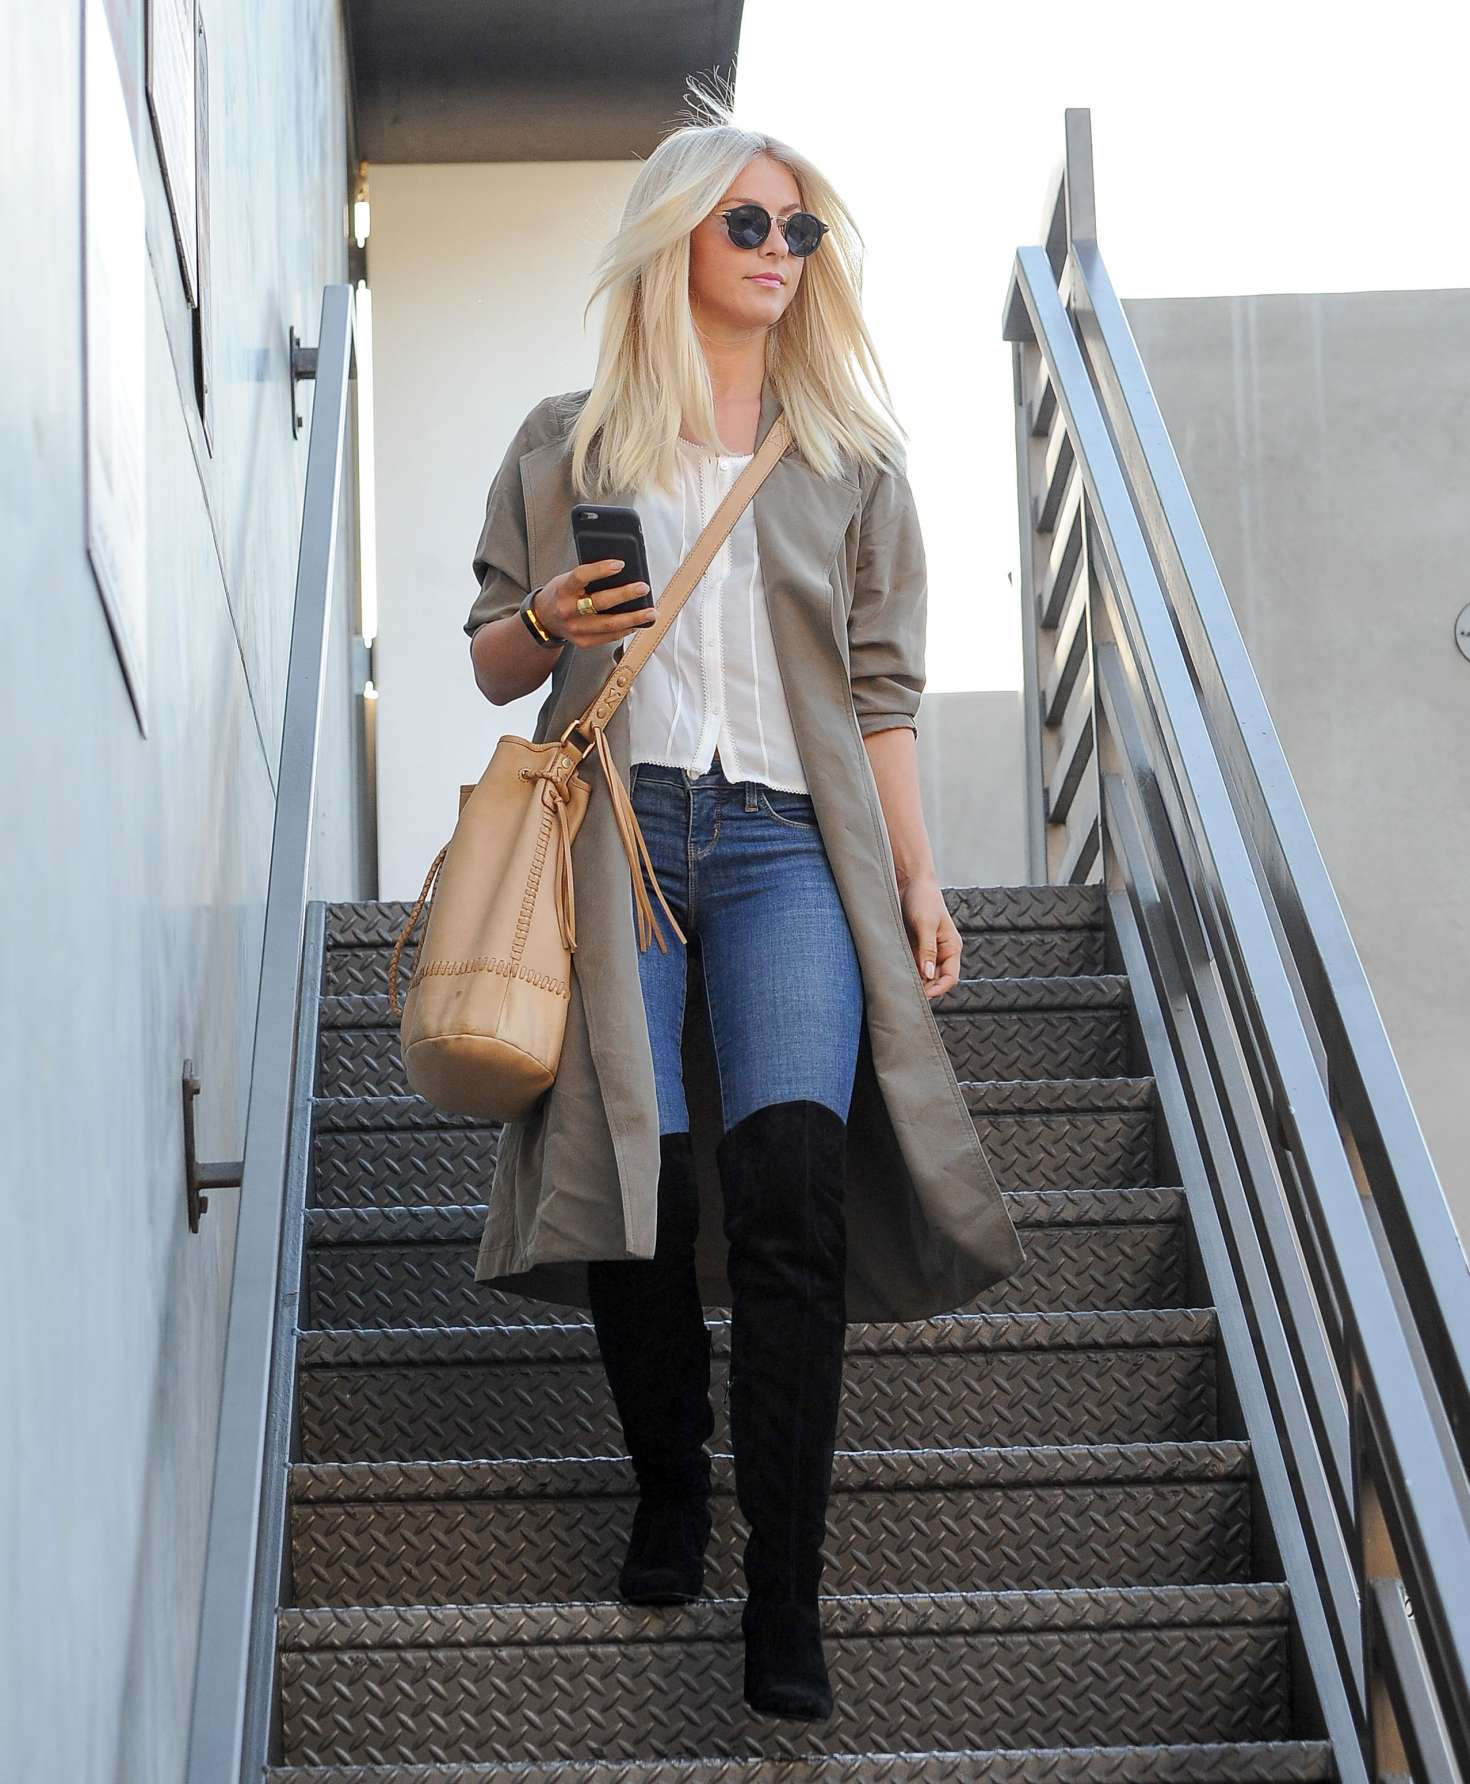 Julianne hough leaving at 901 hair salon 07 gotceleb for 901 salon beverly hills